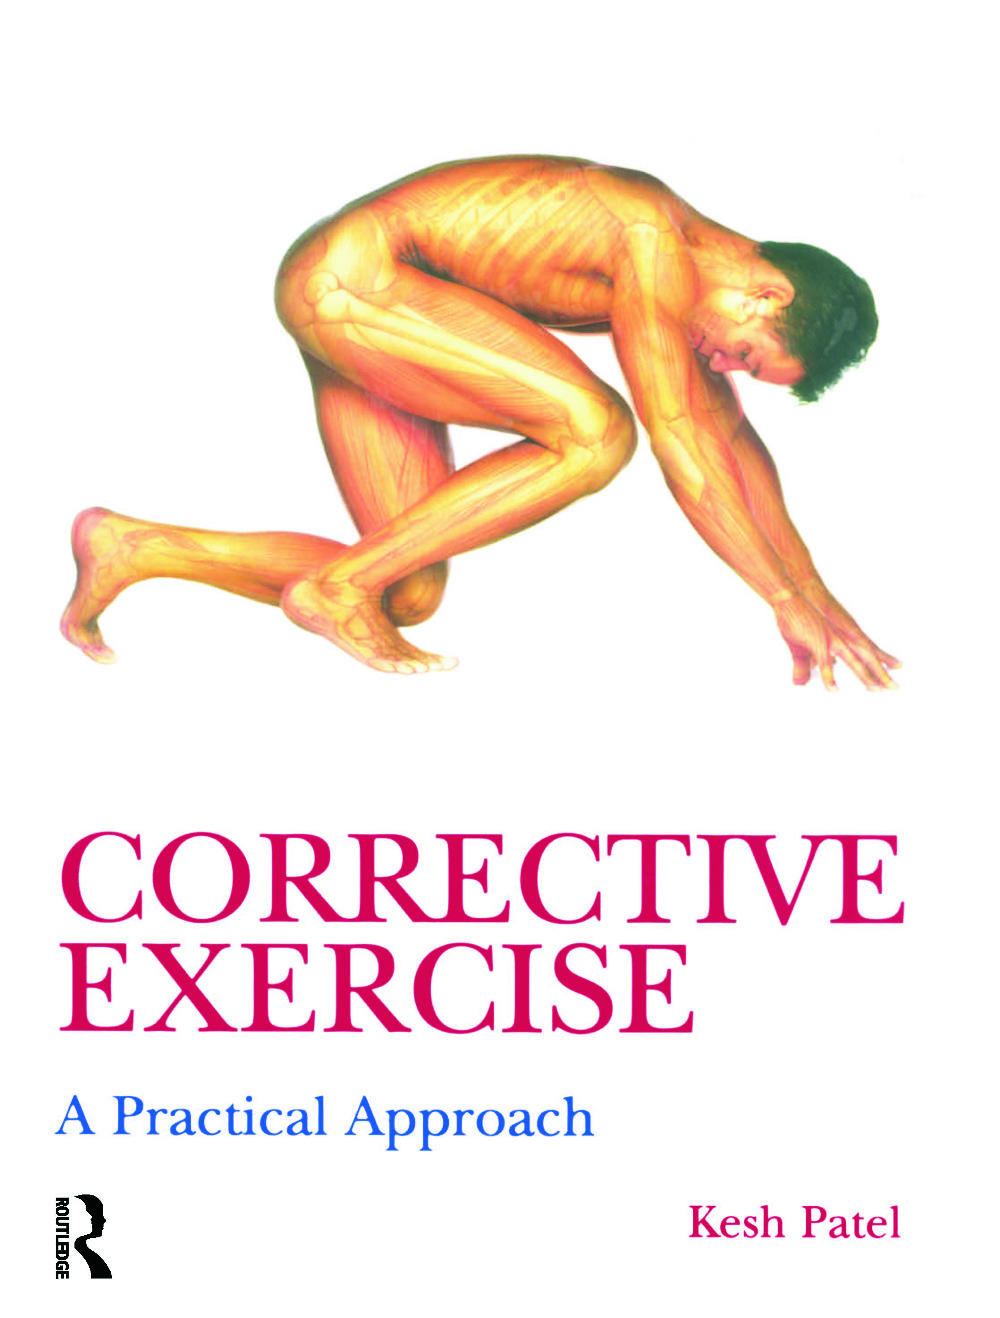 Corrective Exercise: A Practical Approach